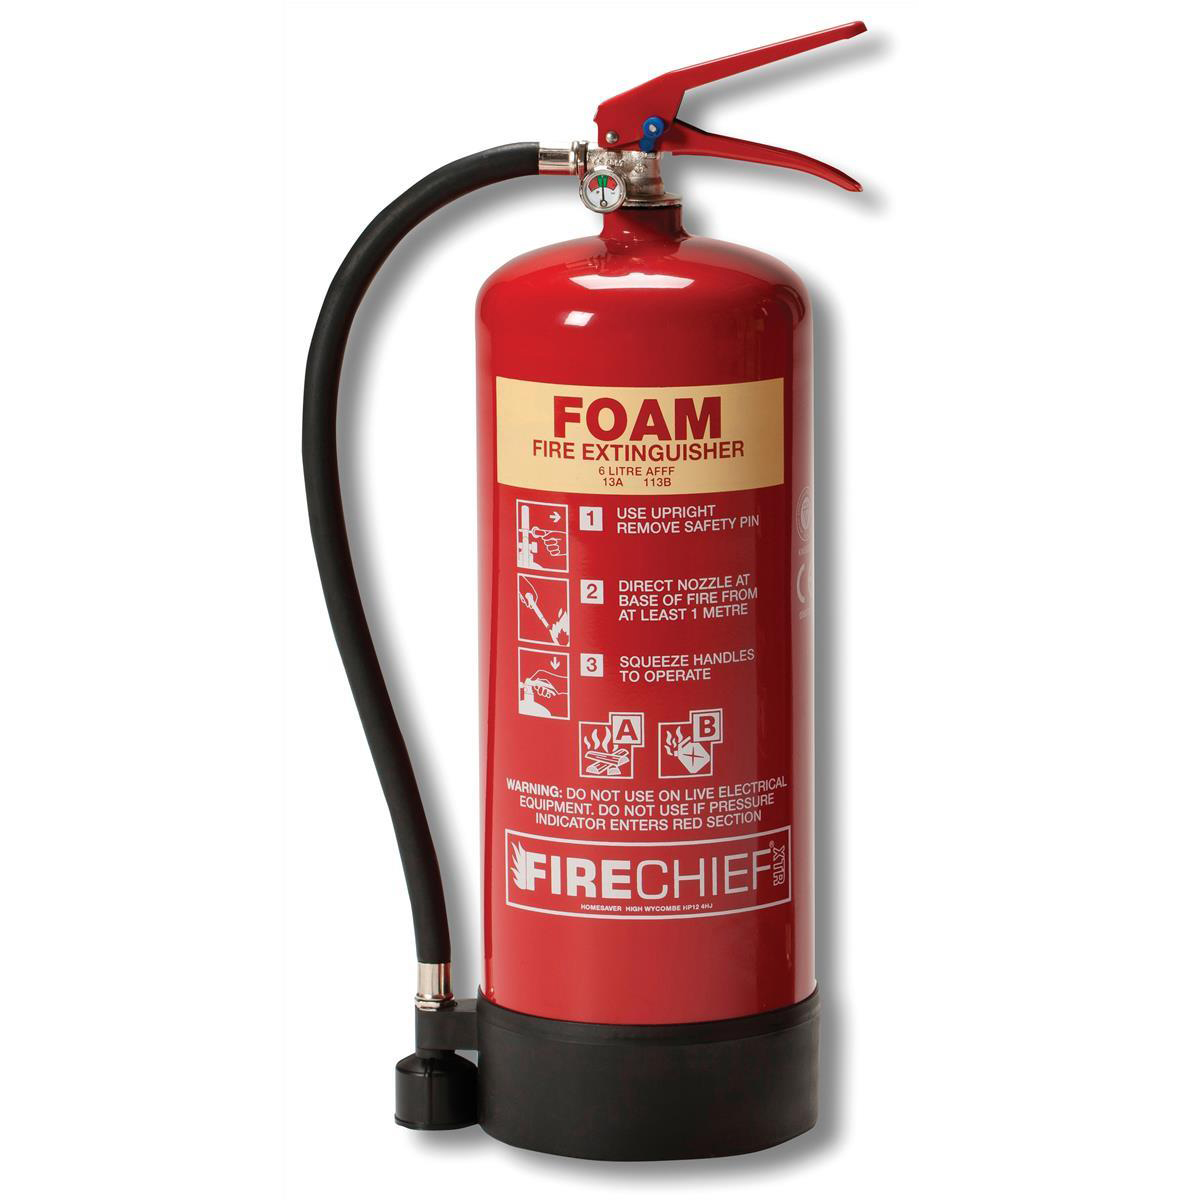 Image for Firechief 6.0LTR Foam Fire Extinguisher for Class A and B Fires Ref WG10144